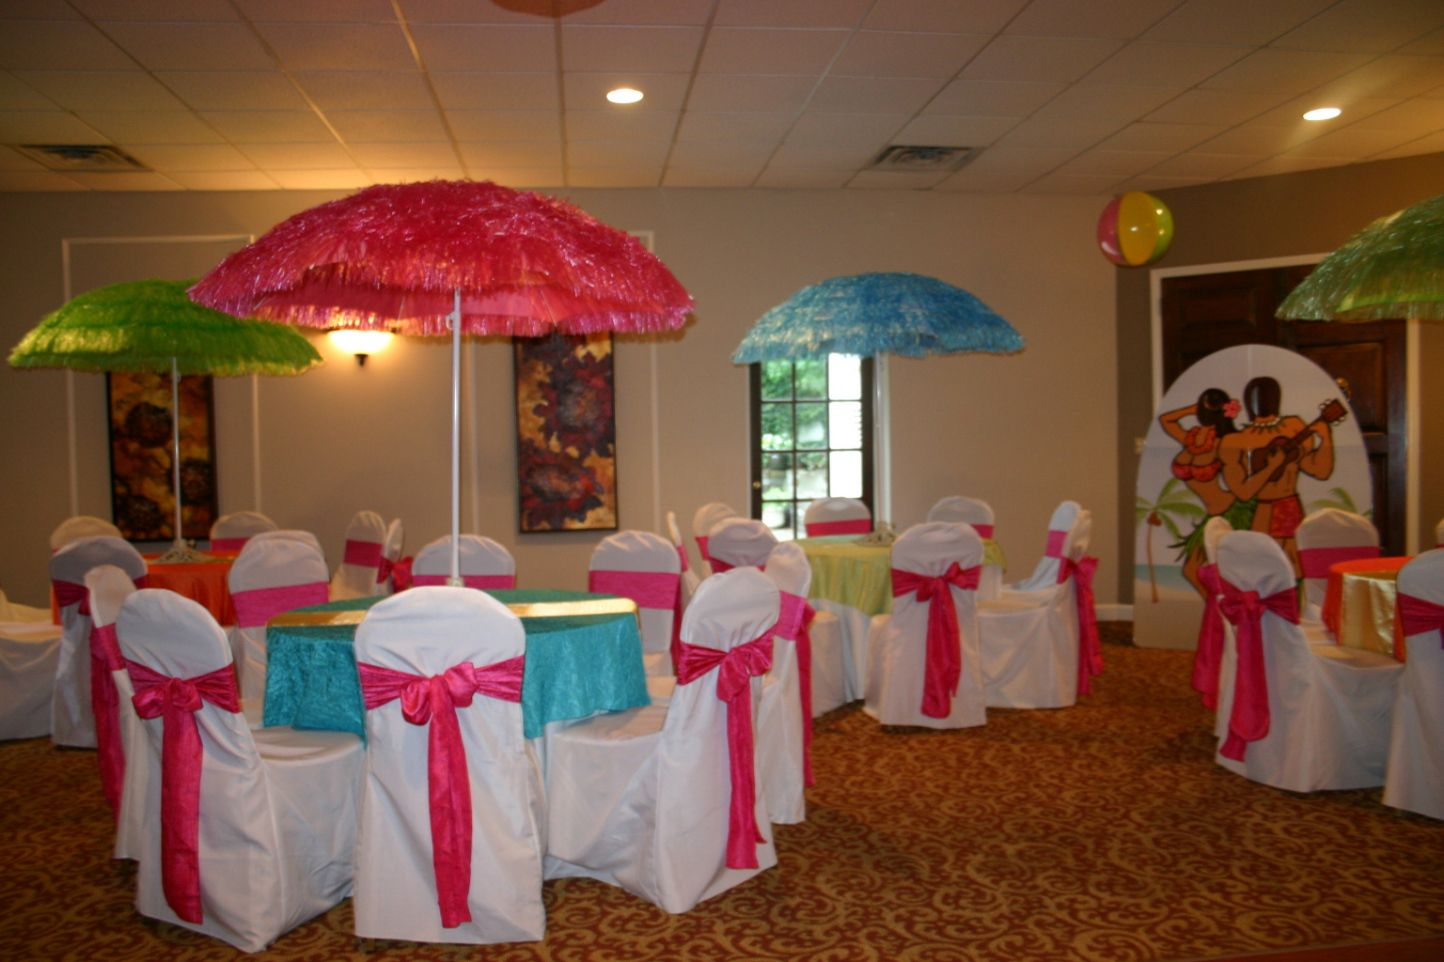 Where Can I Rent A Room For A Baby Shower Popular Interior Paint Colors Che Baby Shower Venues Baby Shower Party Supplies Inexpensive Baby Shower Decorations